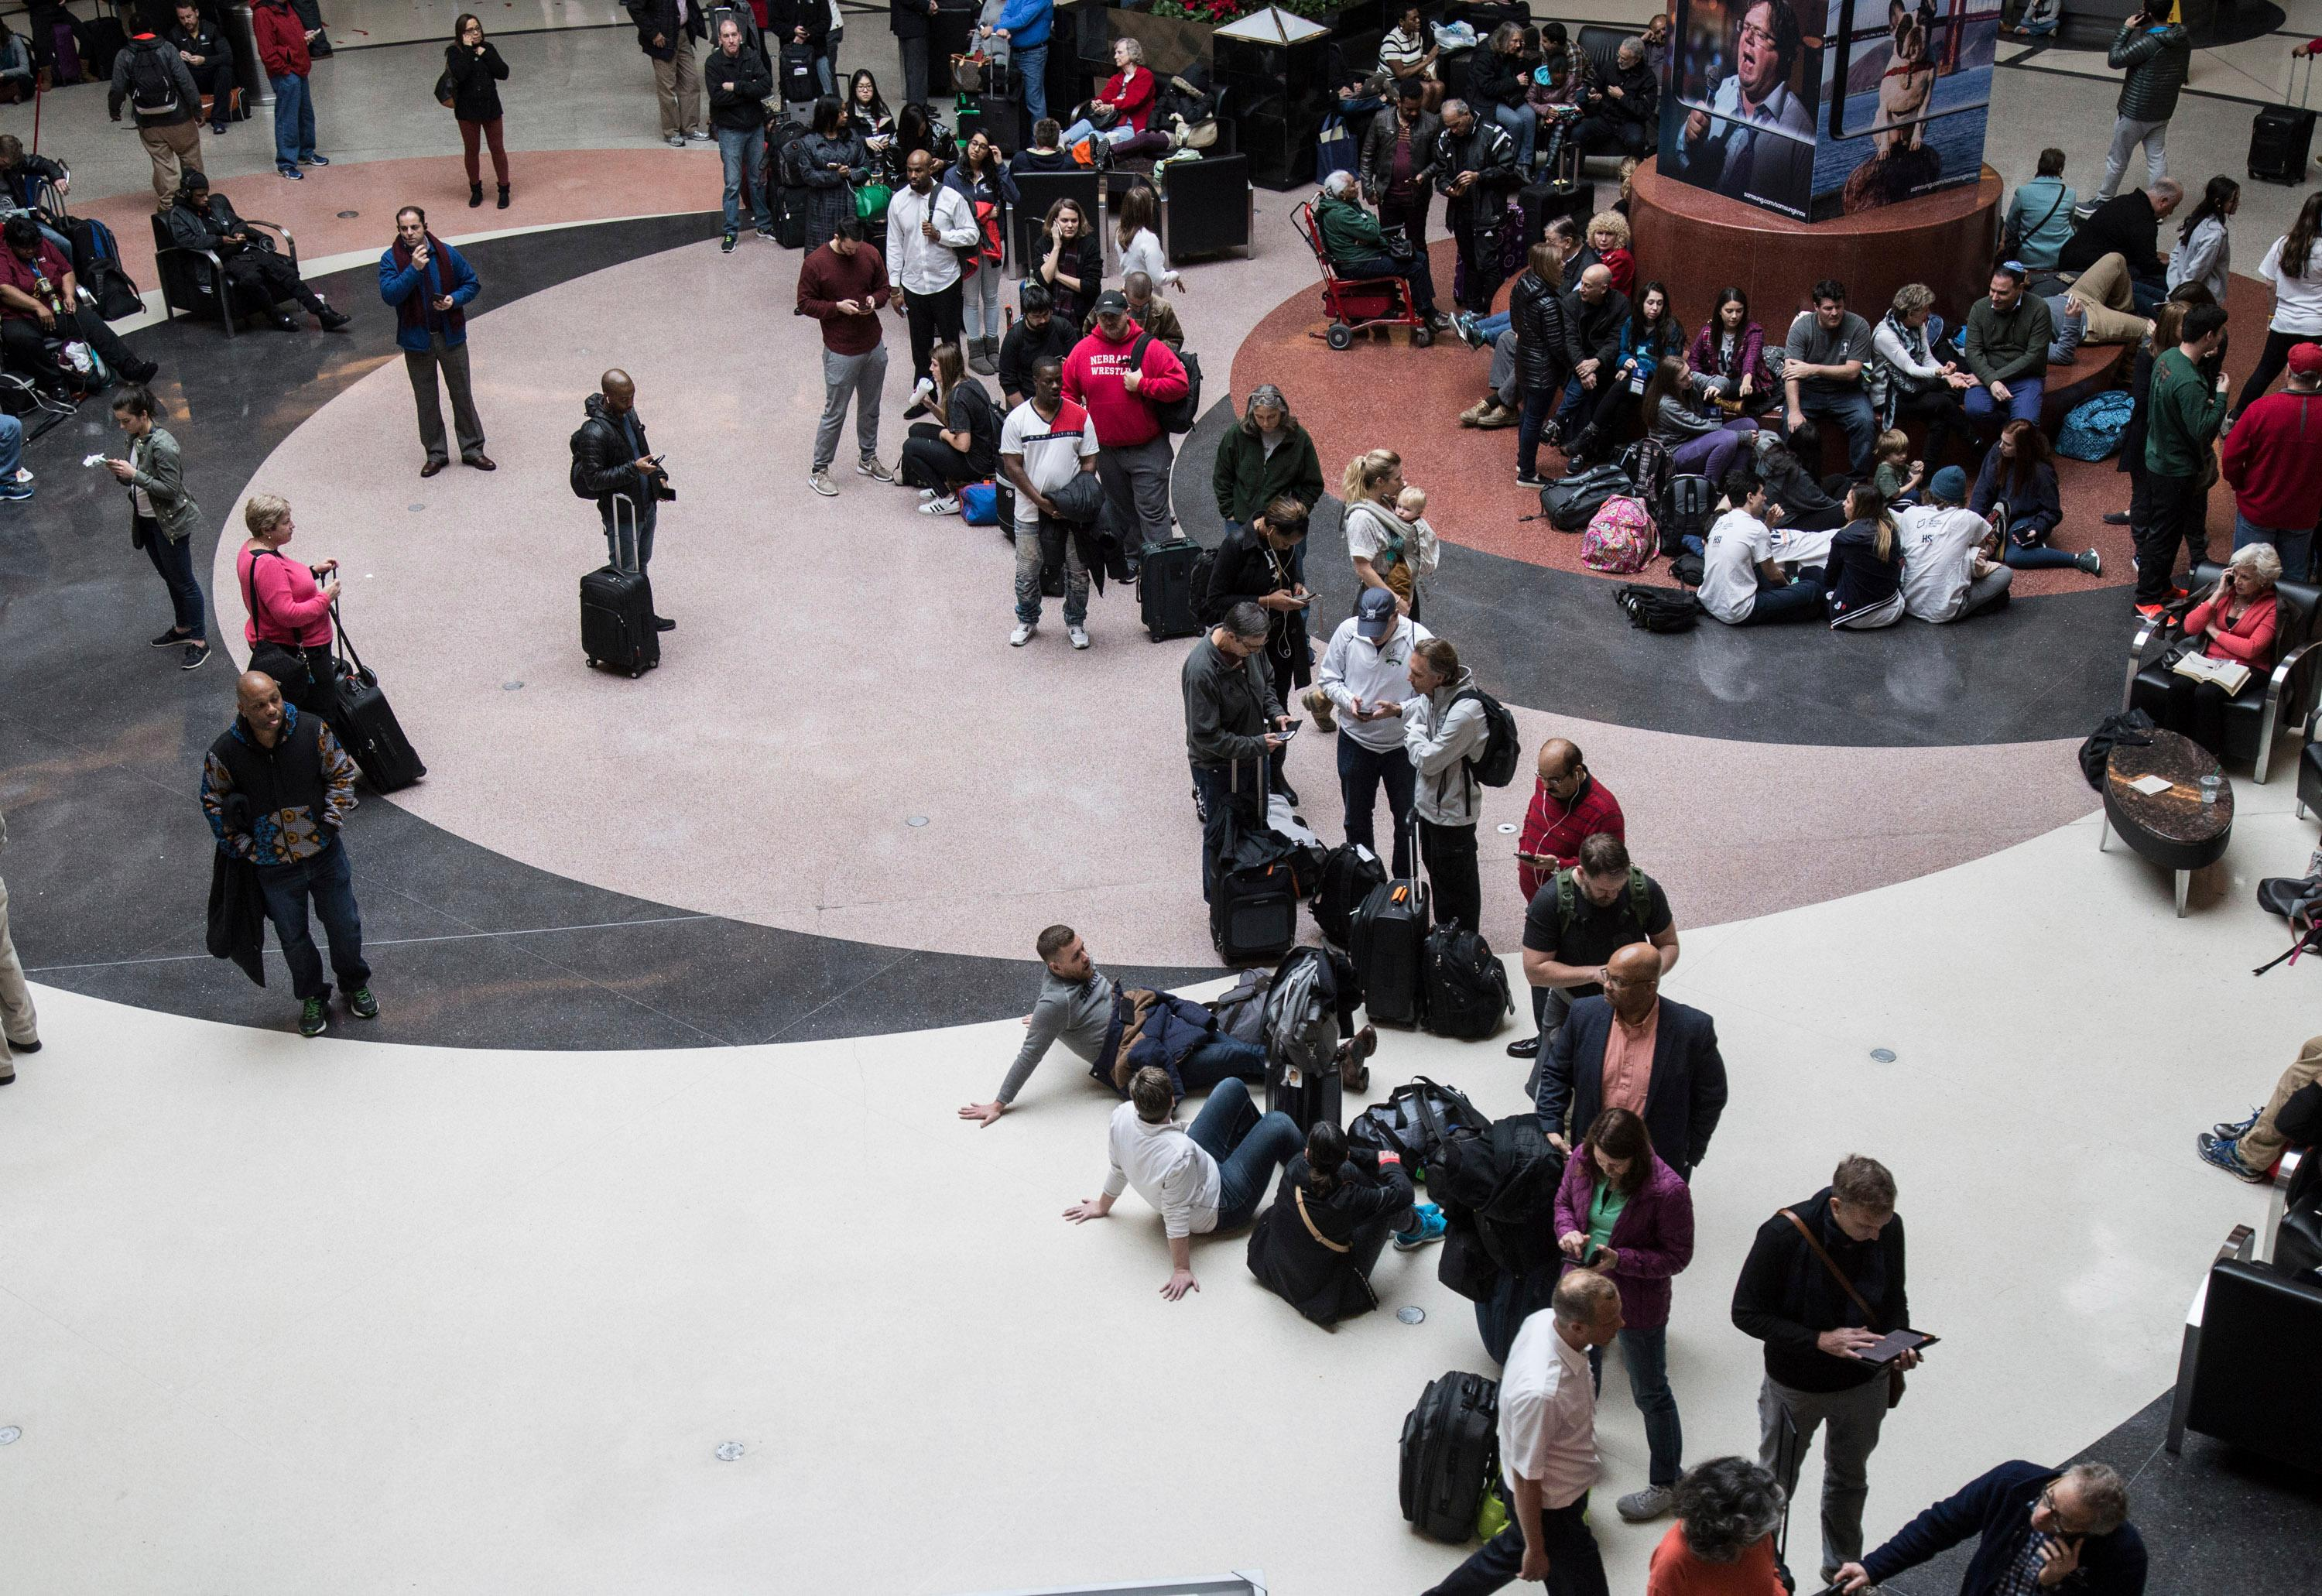 Long lines form at Hartsfield-Jackson International Airport after a power outage, Sunday, Dec. 17, 2017, in Atlanta. A sudden power outage at the Hartsfield-Jackson Atlanta International Airport on Sunday grounded scores of flights and passengers during one of the busiest travel times of the year. (Steve Schaefer/Atlanta Journal-Constitution via AP)